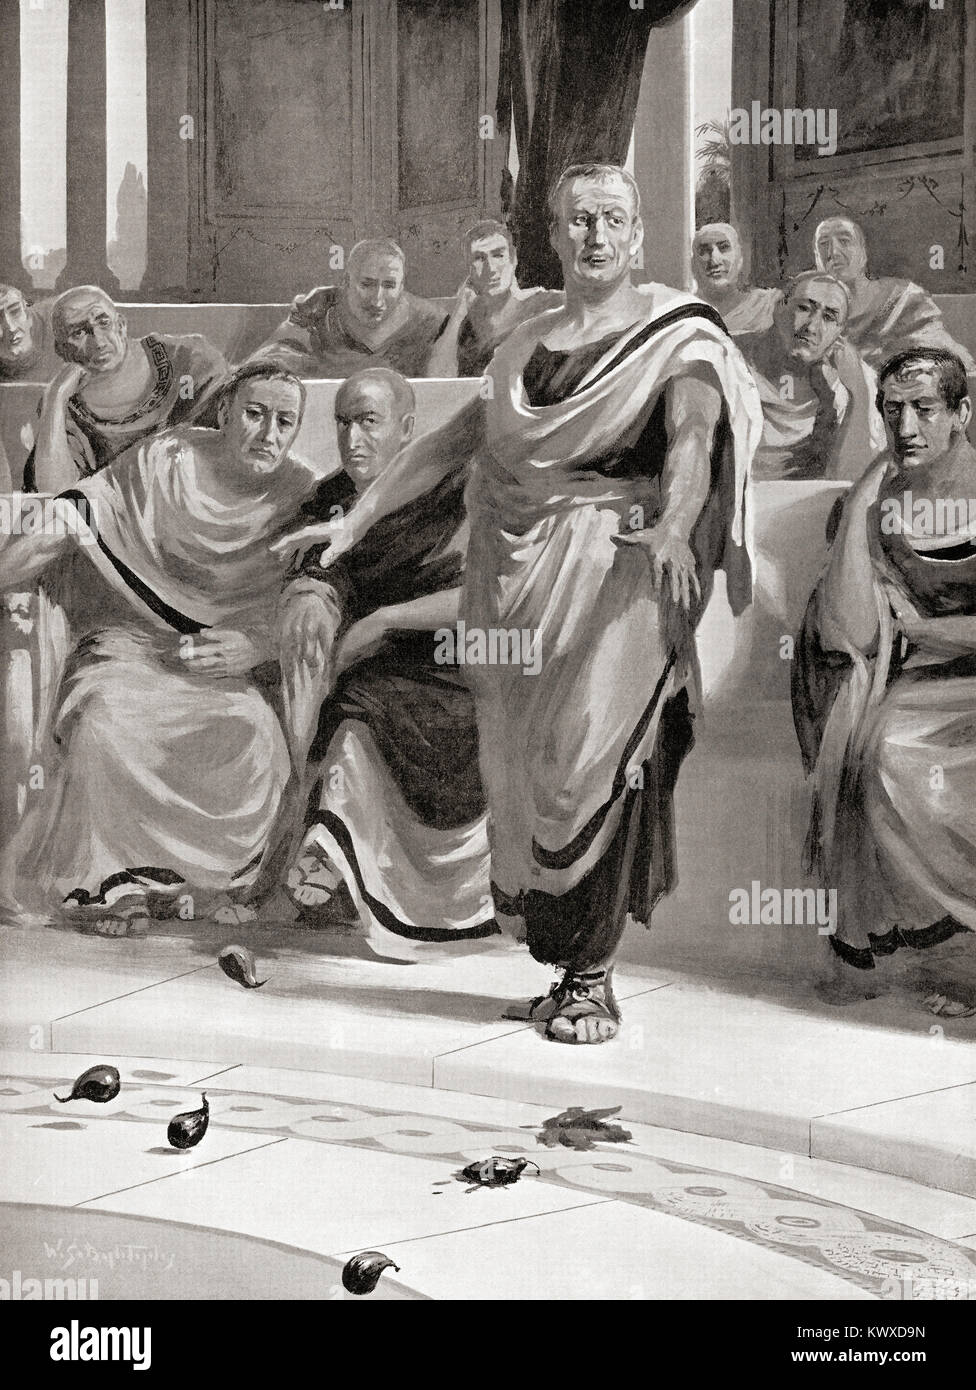 Delenda est Carthago, (Carthage must be destroyed) Latin oratorical phrase used by Cato the Elder to close all his - Stock Image